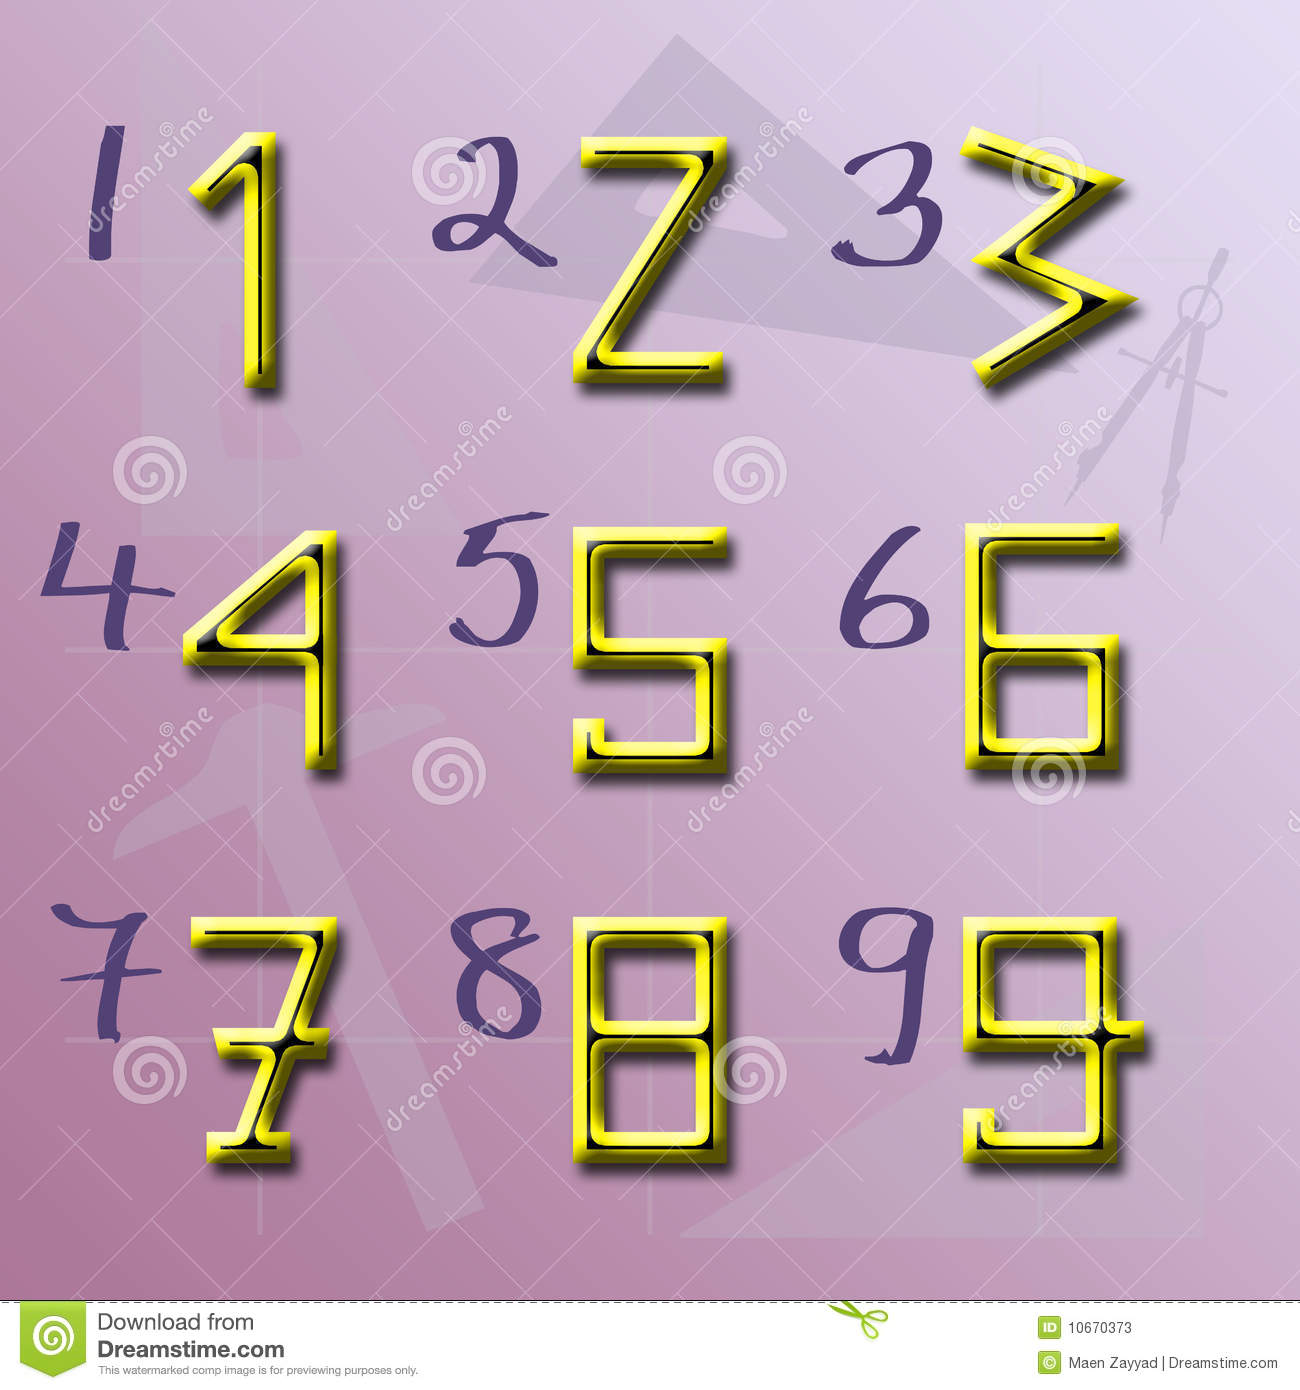 Origin of Numbers shape